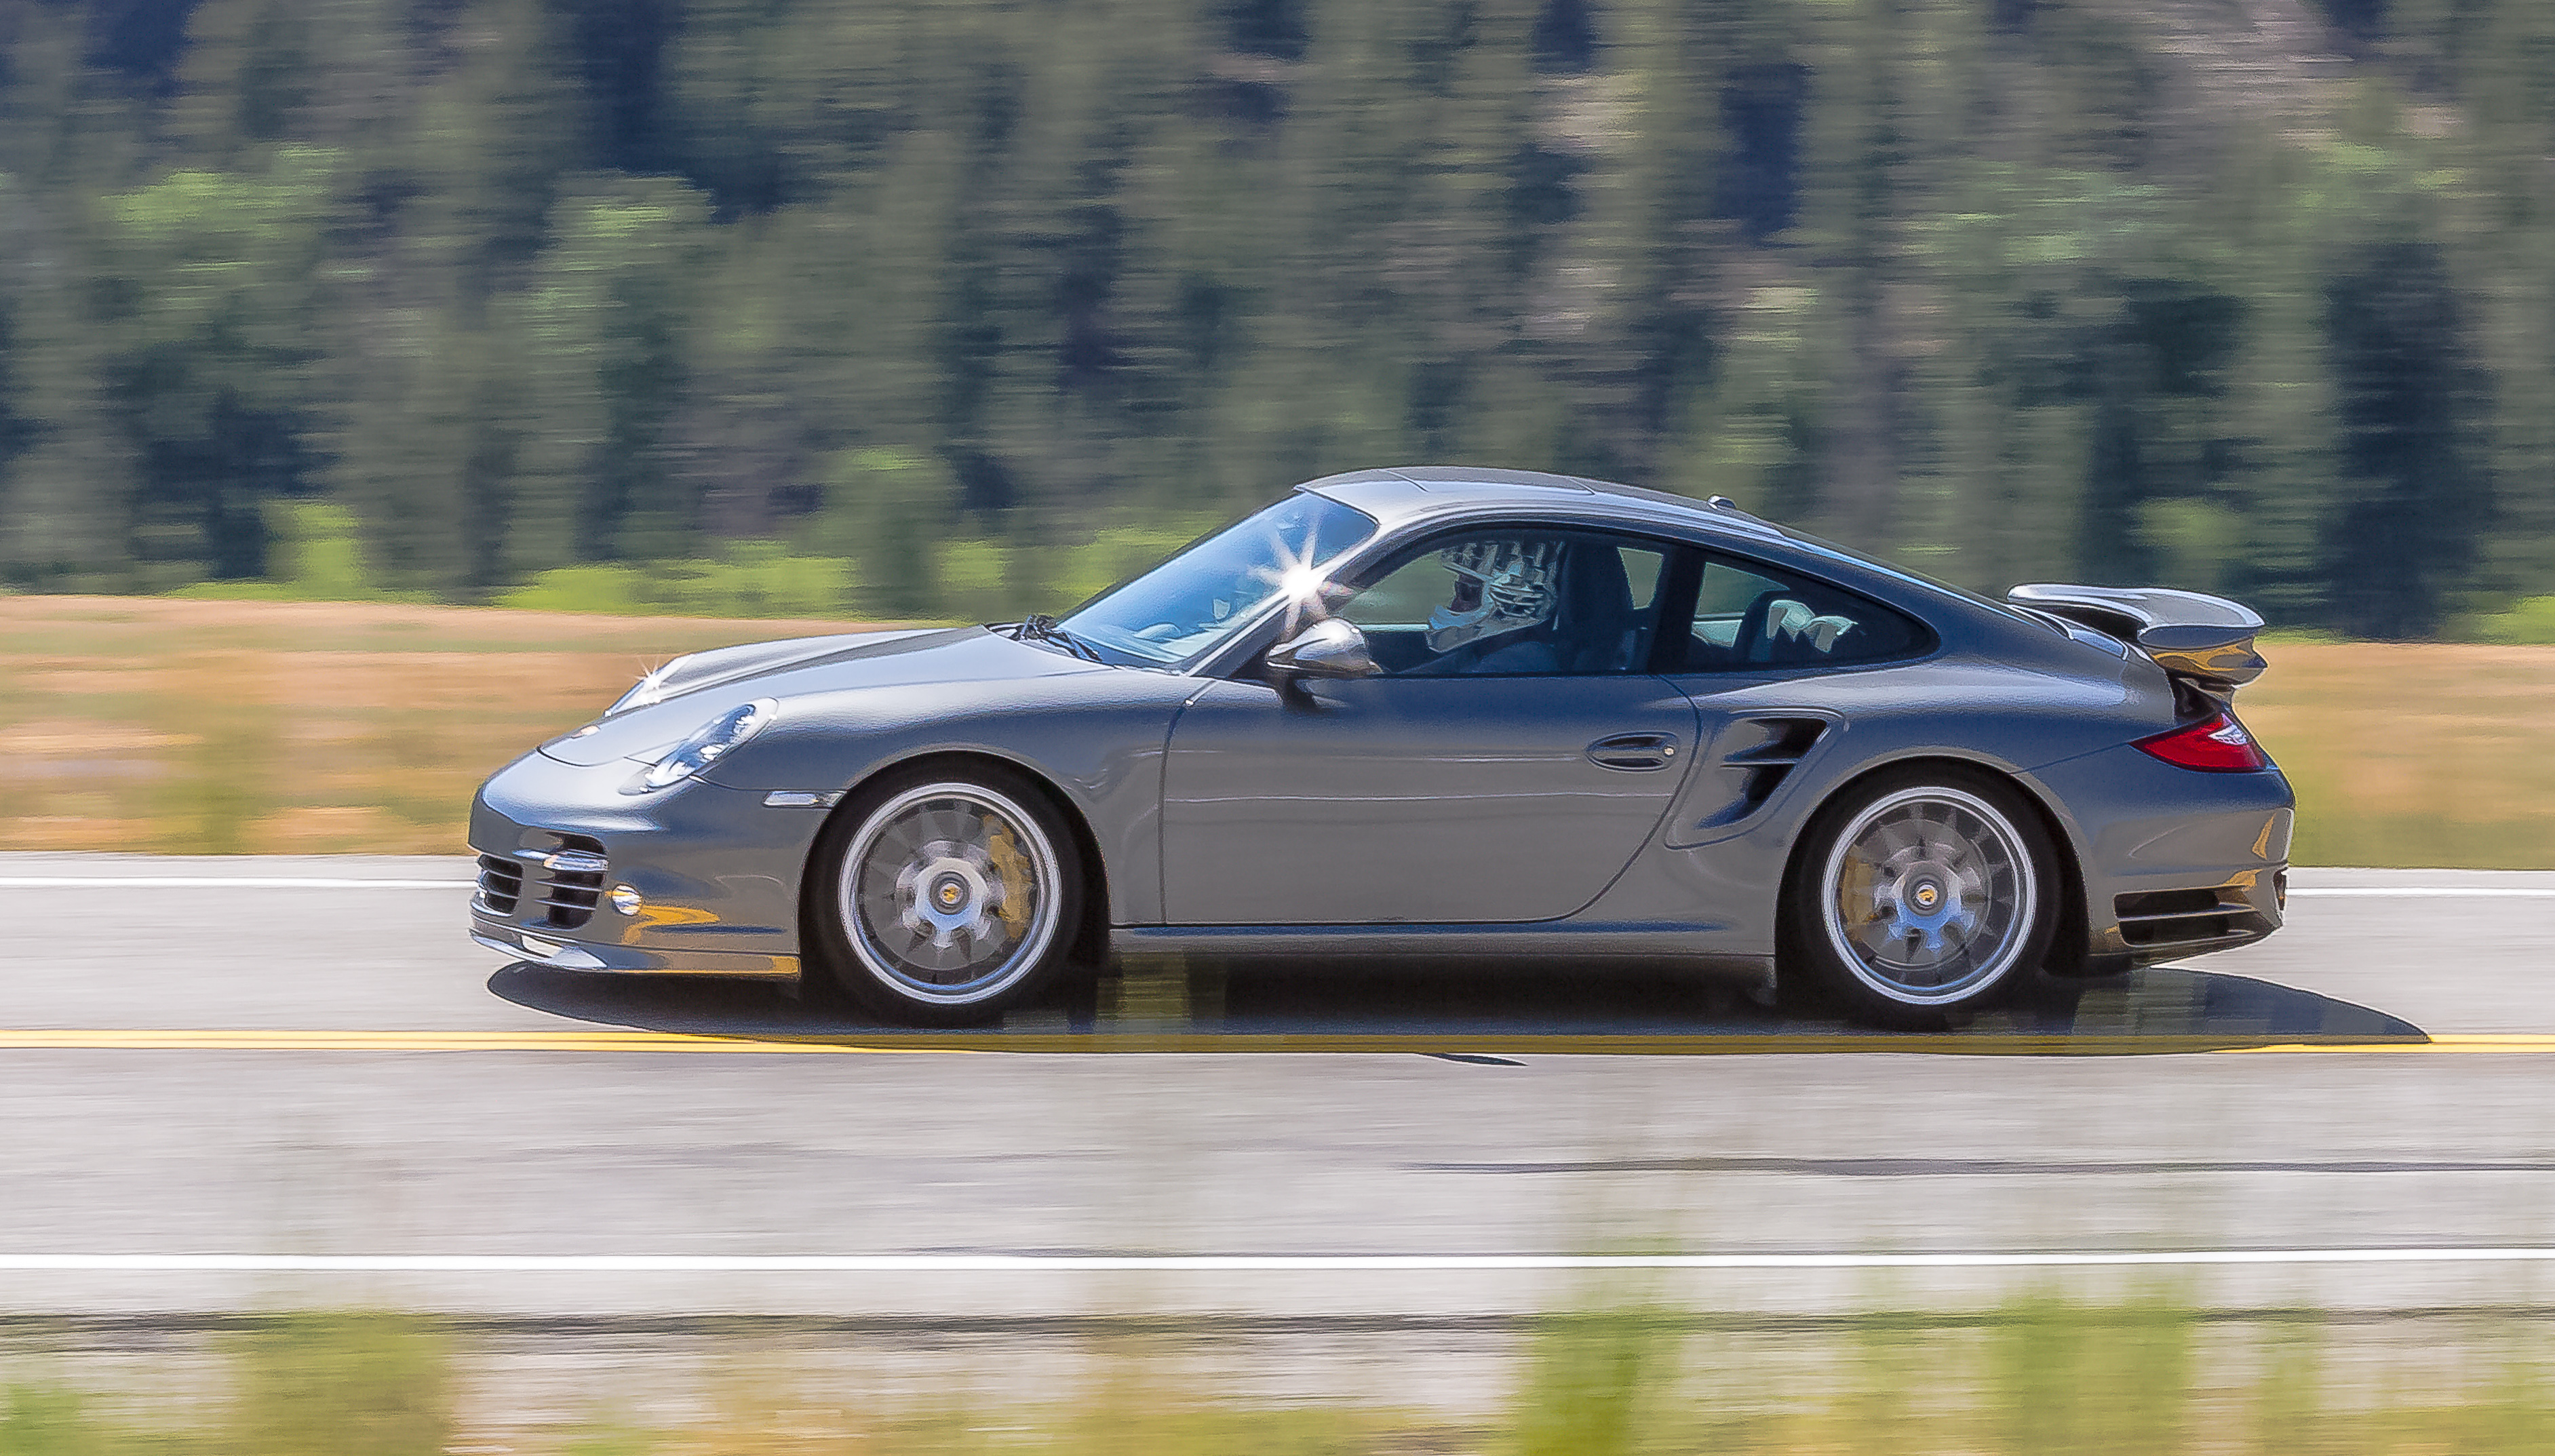 Porsche 911 Turbo S _ 200 mph-1291-David Concannon